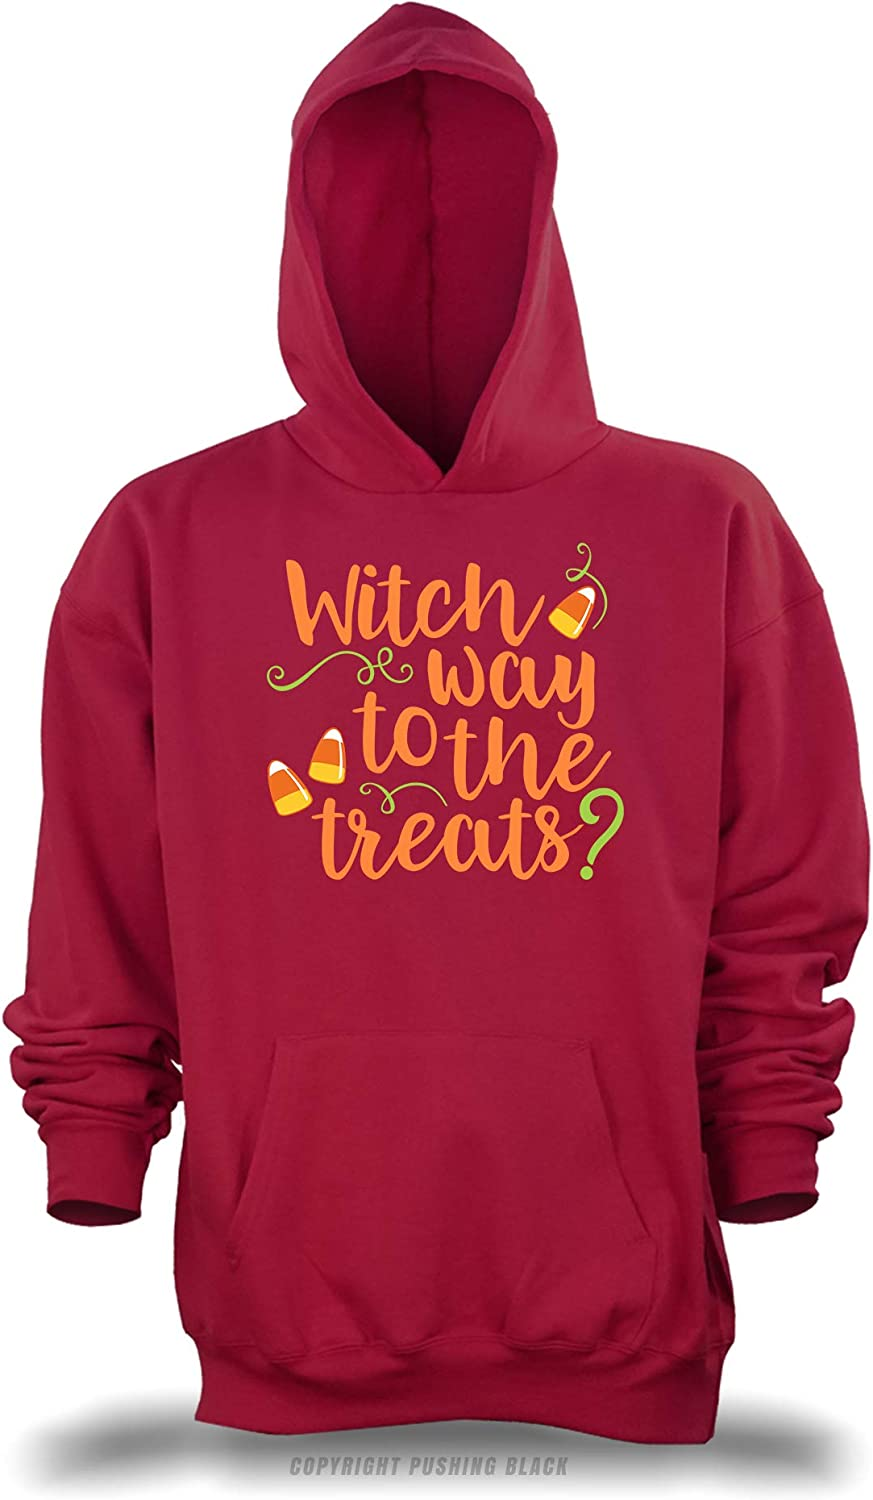 PUSHING BLACK Witch Way to The Treats Unisex Pullover Hoodie